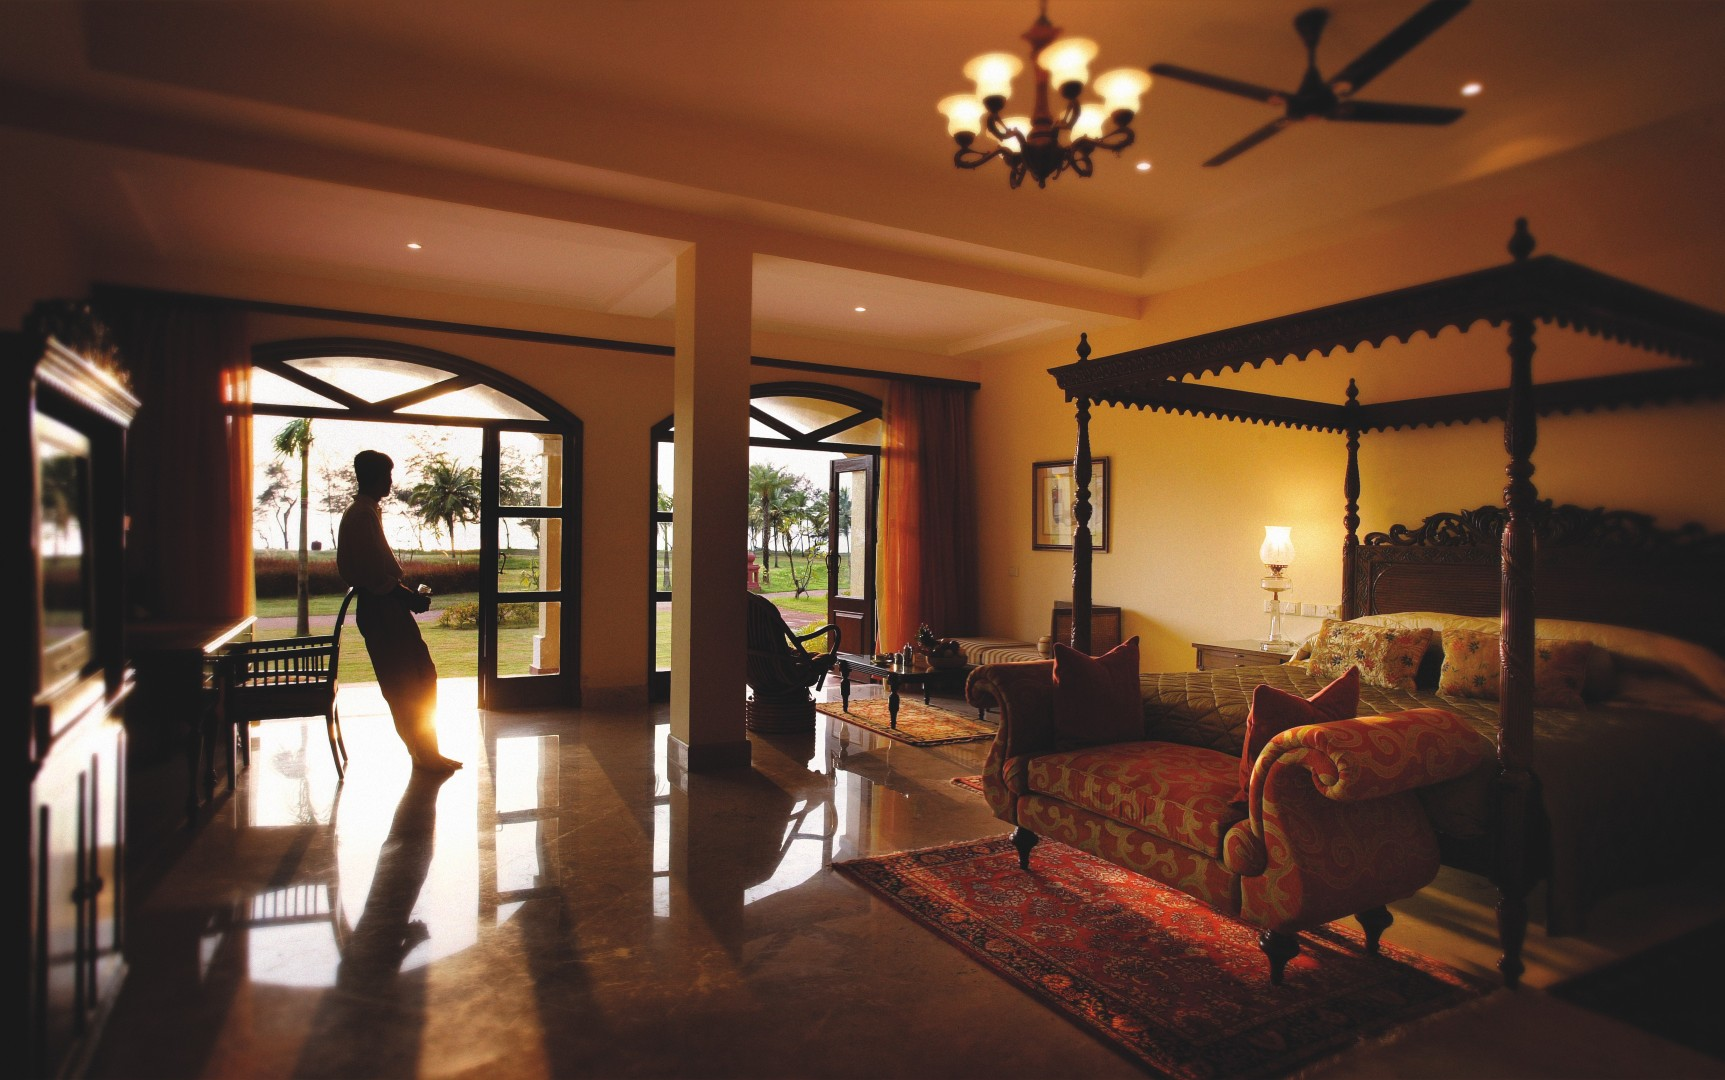 The Lalit 5* Golf & Spa resort (lux)